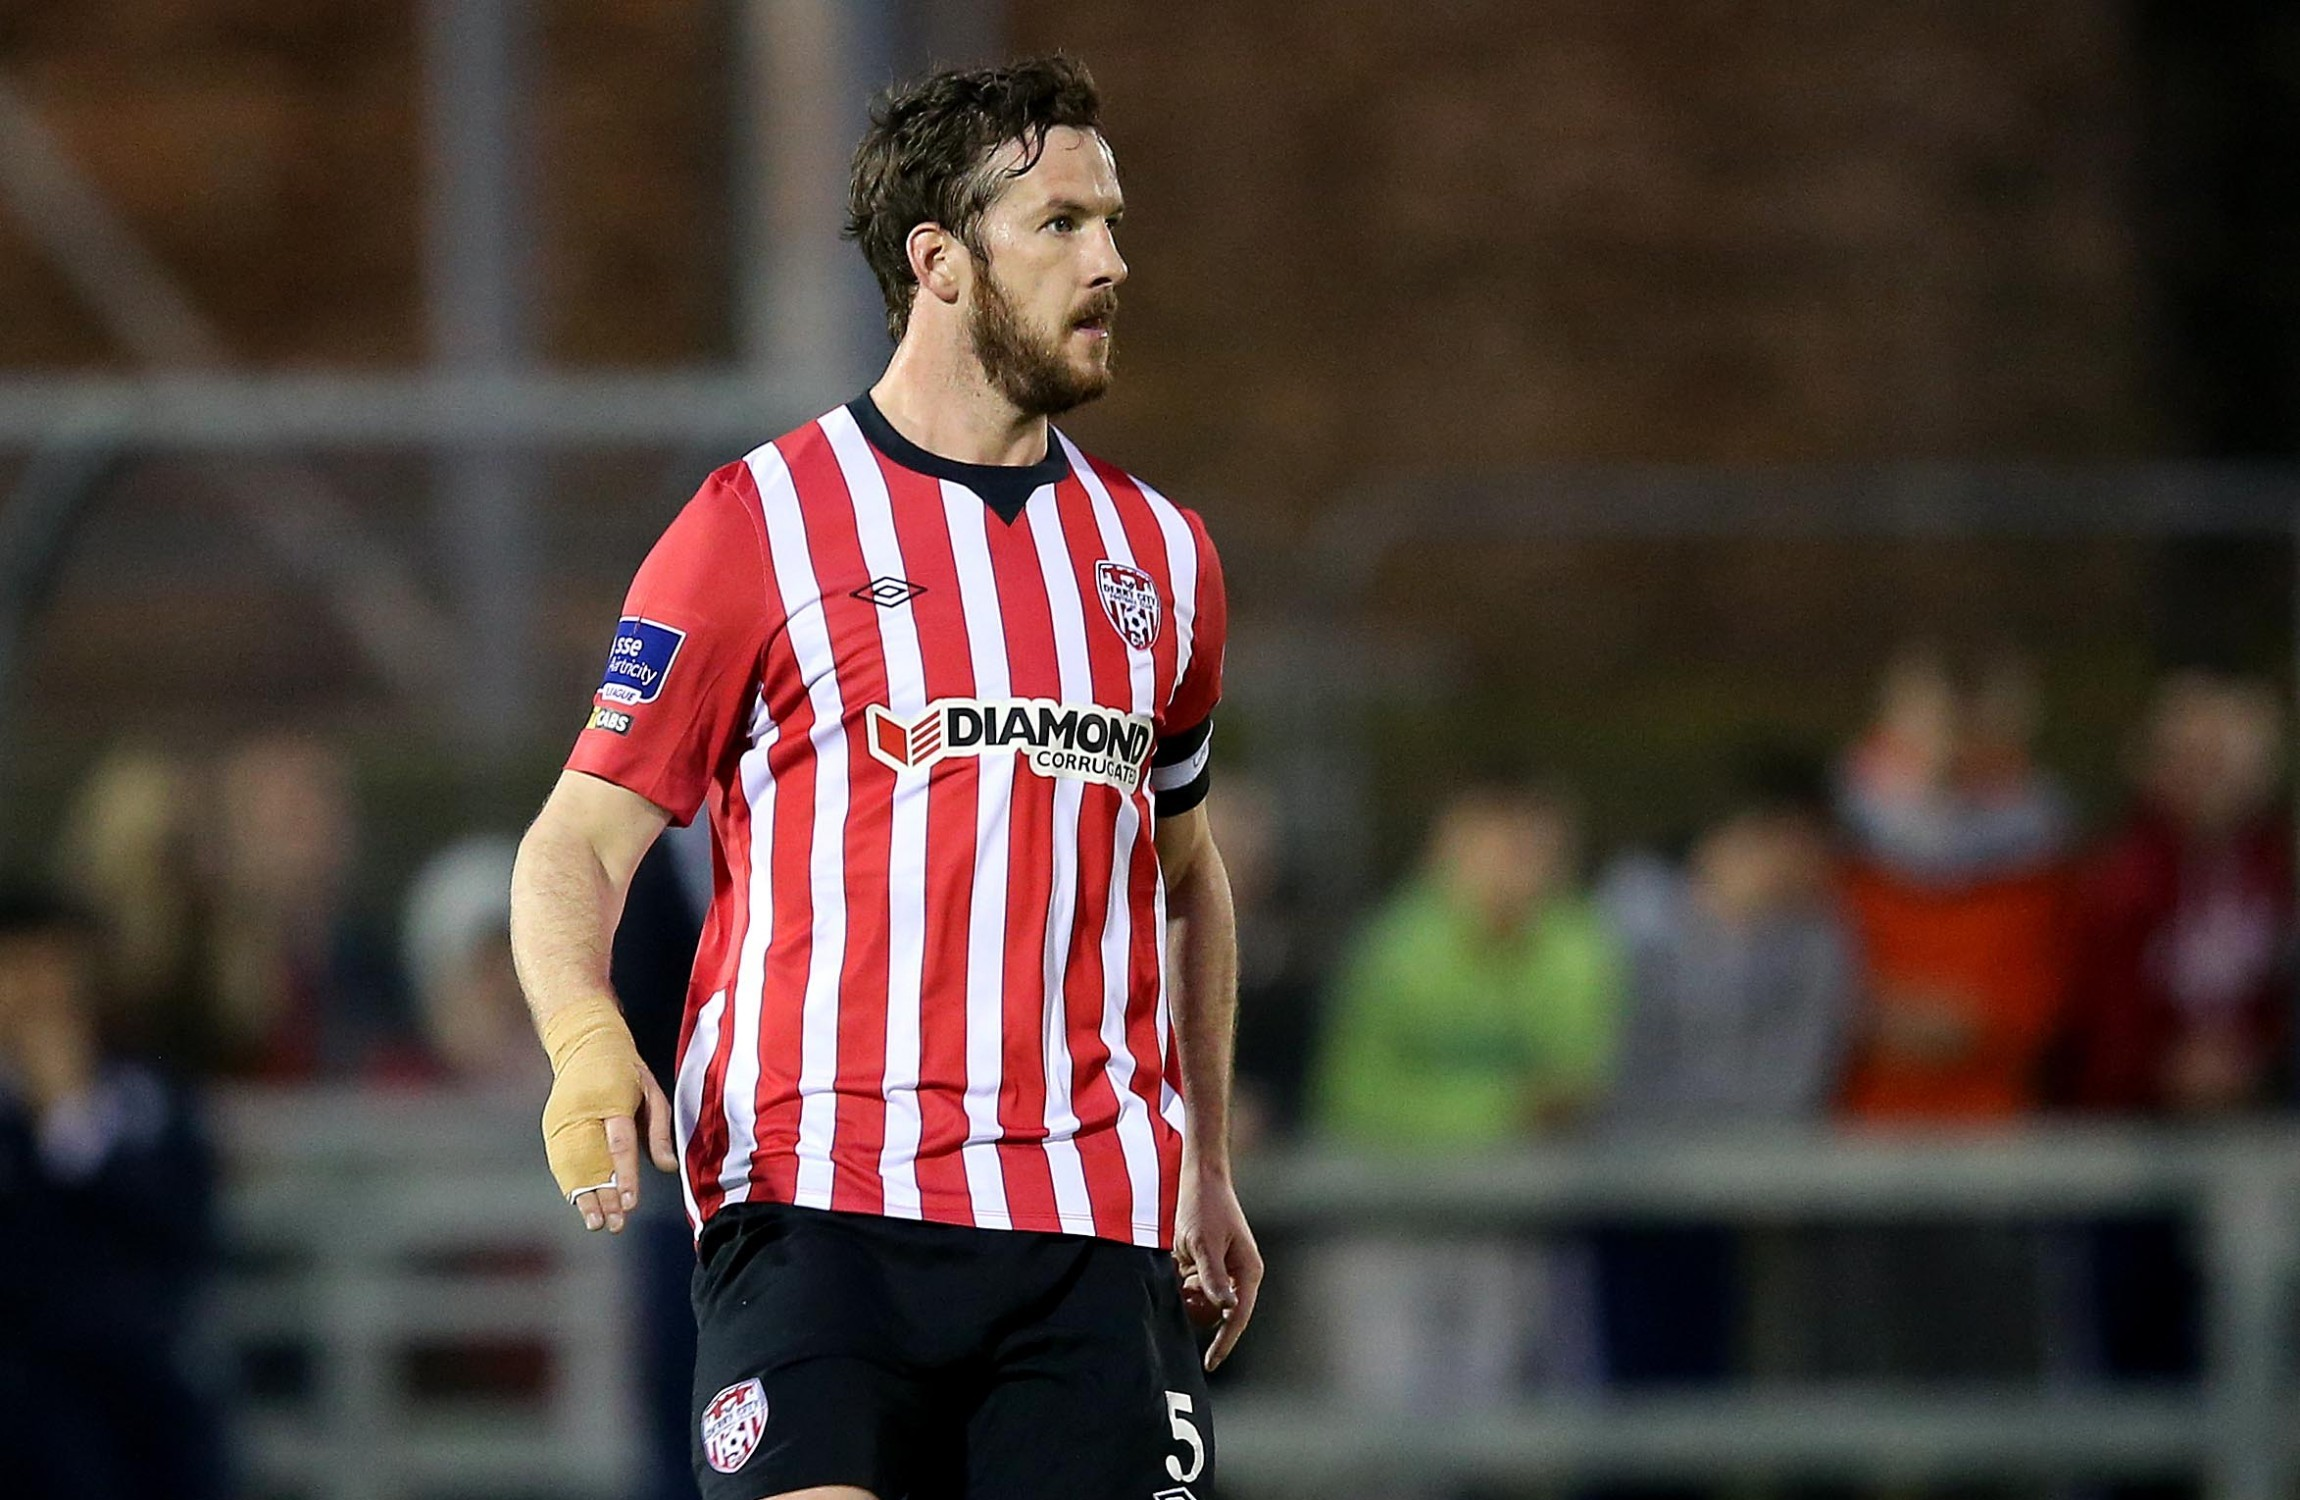 Limerick's Shaun Kelly pays tribute to ex-Derry team mate McBride